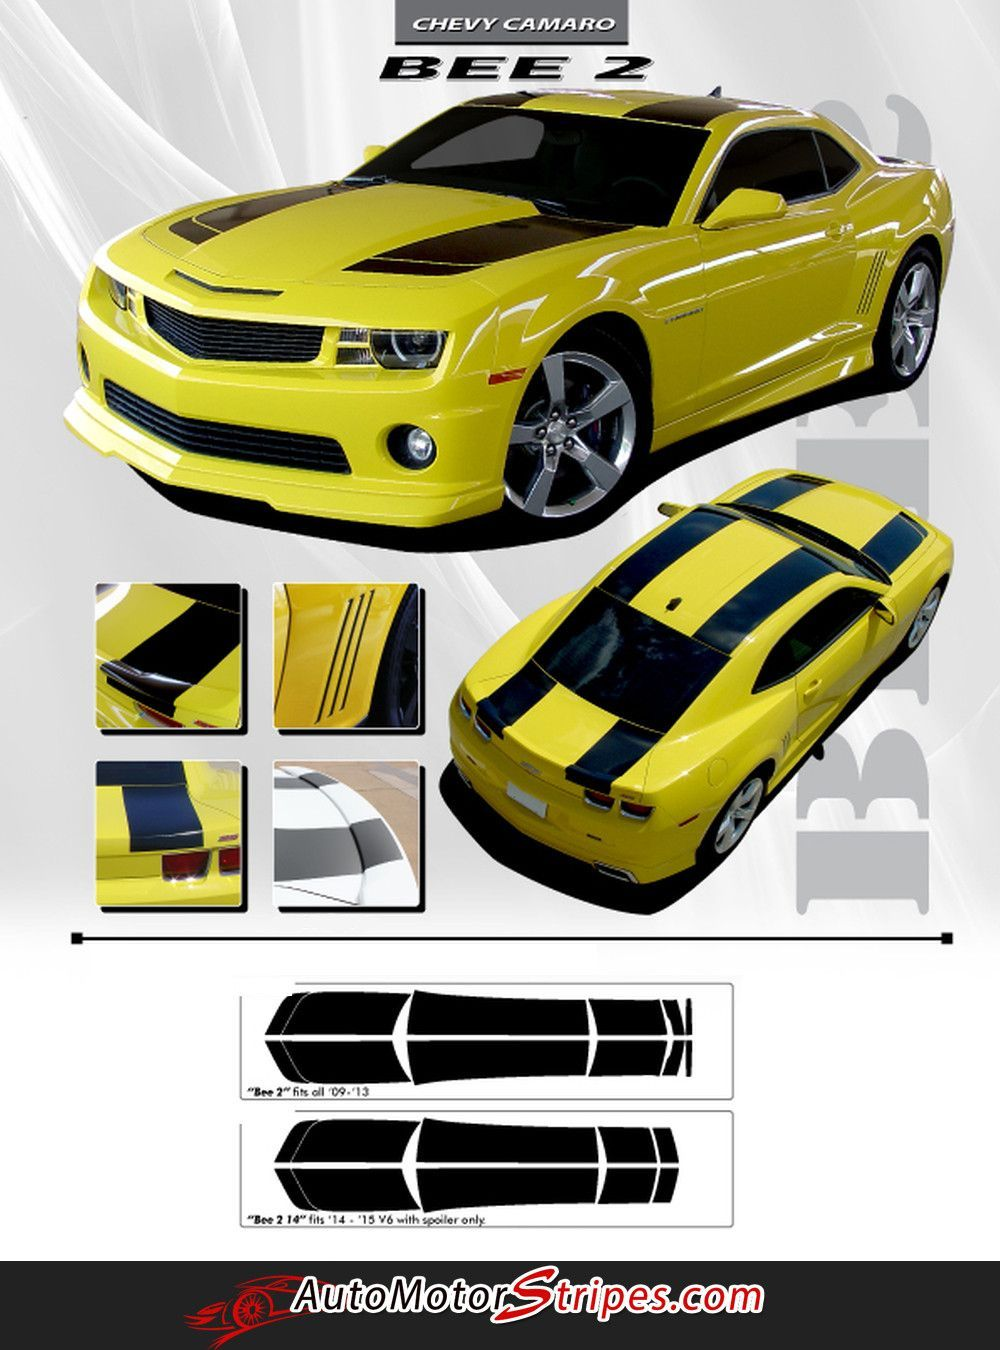 Car sticker maker in delhi - 2010 2013 Or 2014 2015 Chevy Camaro Bumblebee Bee 2 Transformers Style Racing Rally Stripes 3m Kit For Ss Rs Lt Ls